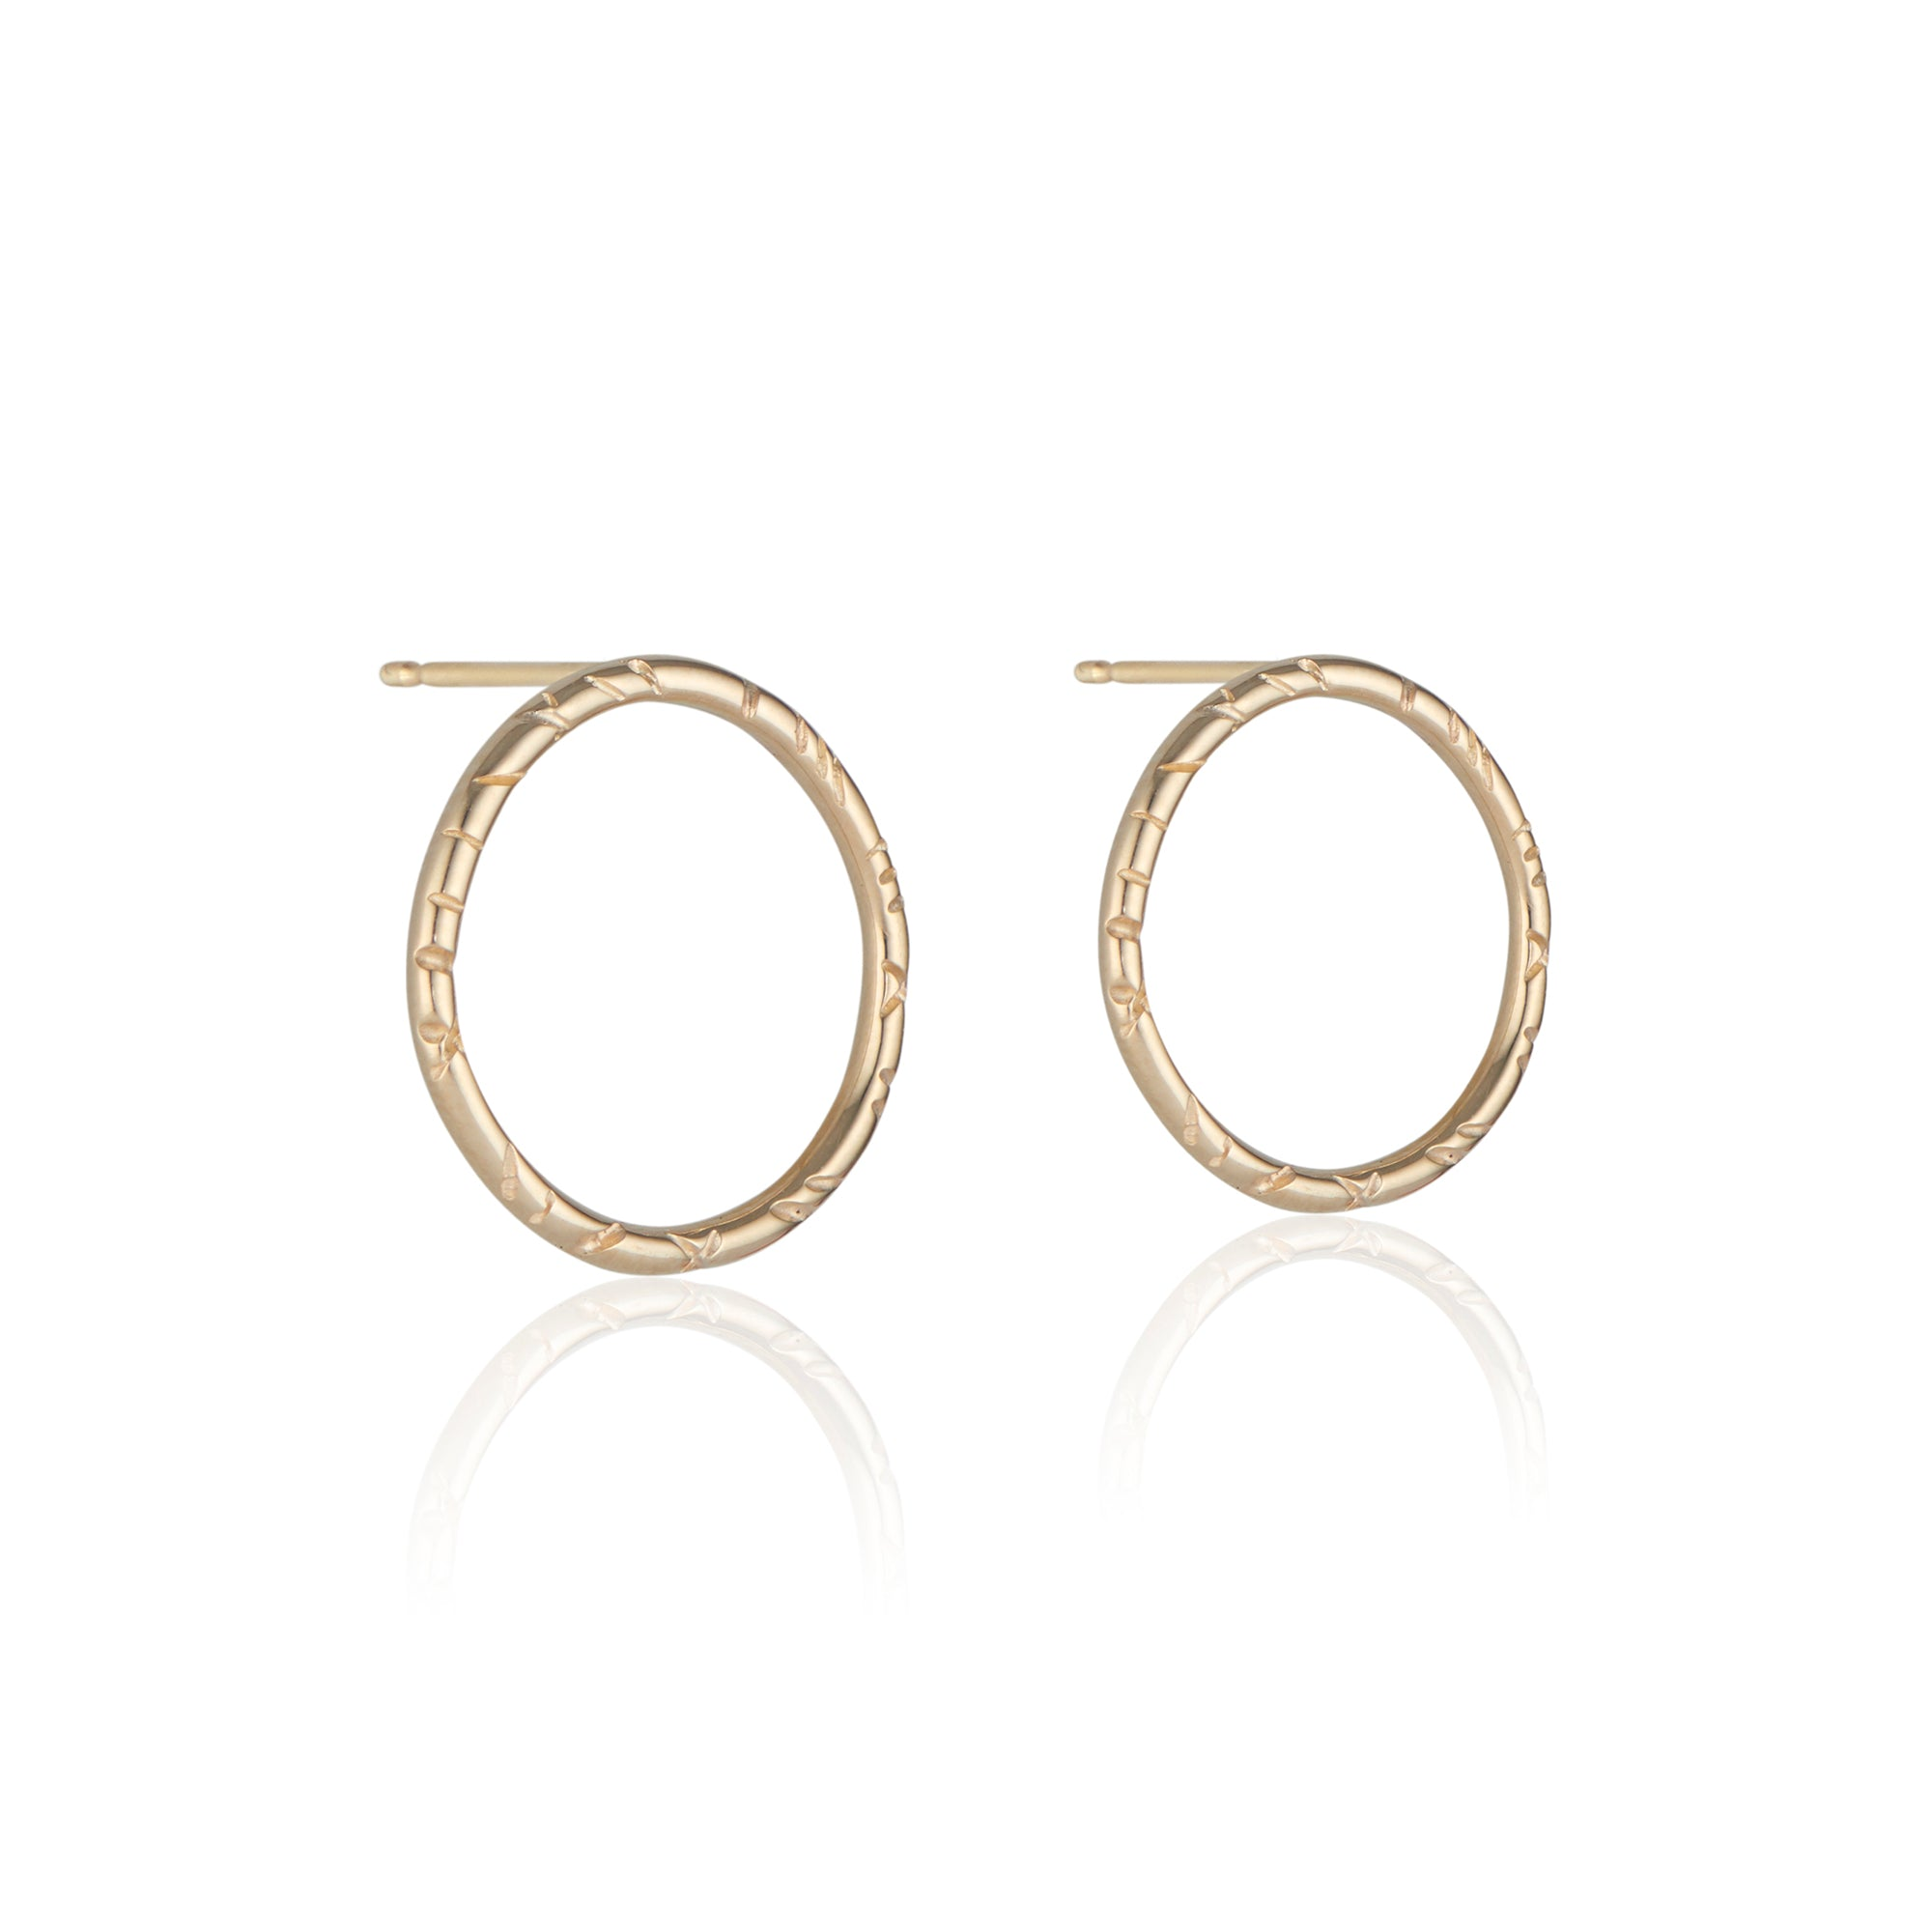 Chic, understated, and a touch of fun, the Madeline Earrings by Natalie McMillan are an incredibly comfortable pair of studs that can be dressed up or down for truly any occasion. They are the perfect pair to wear to the office, or out on the town!